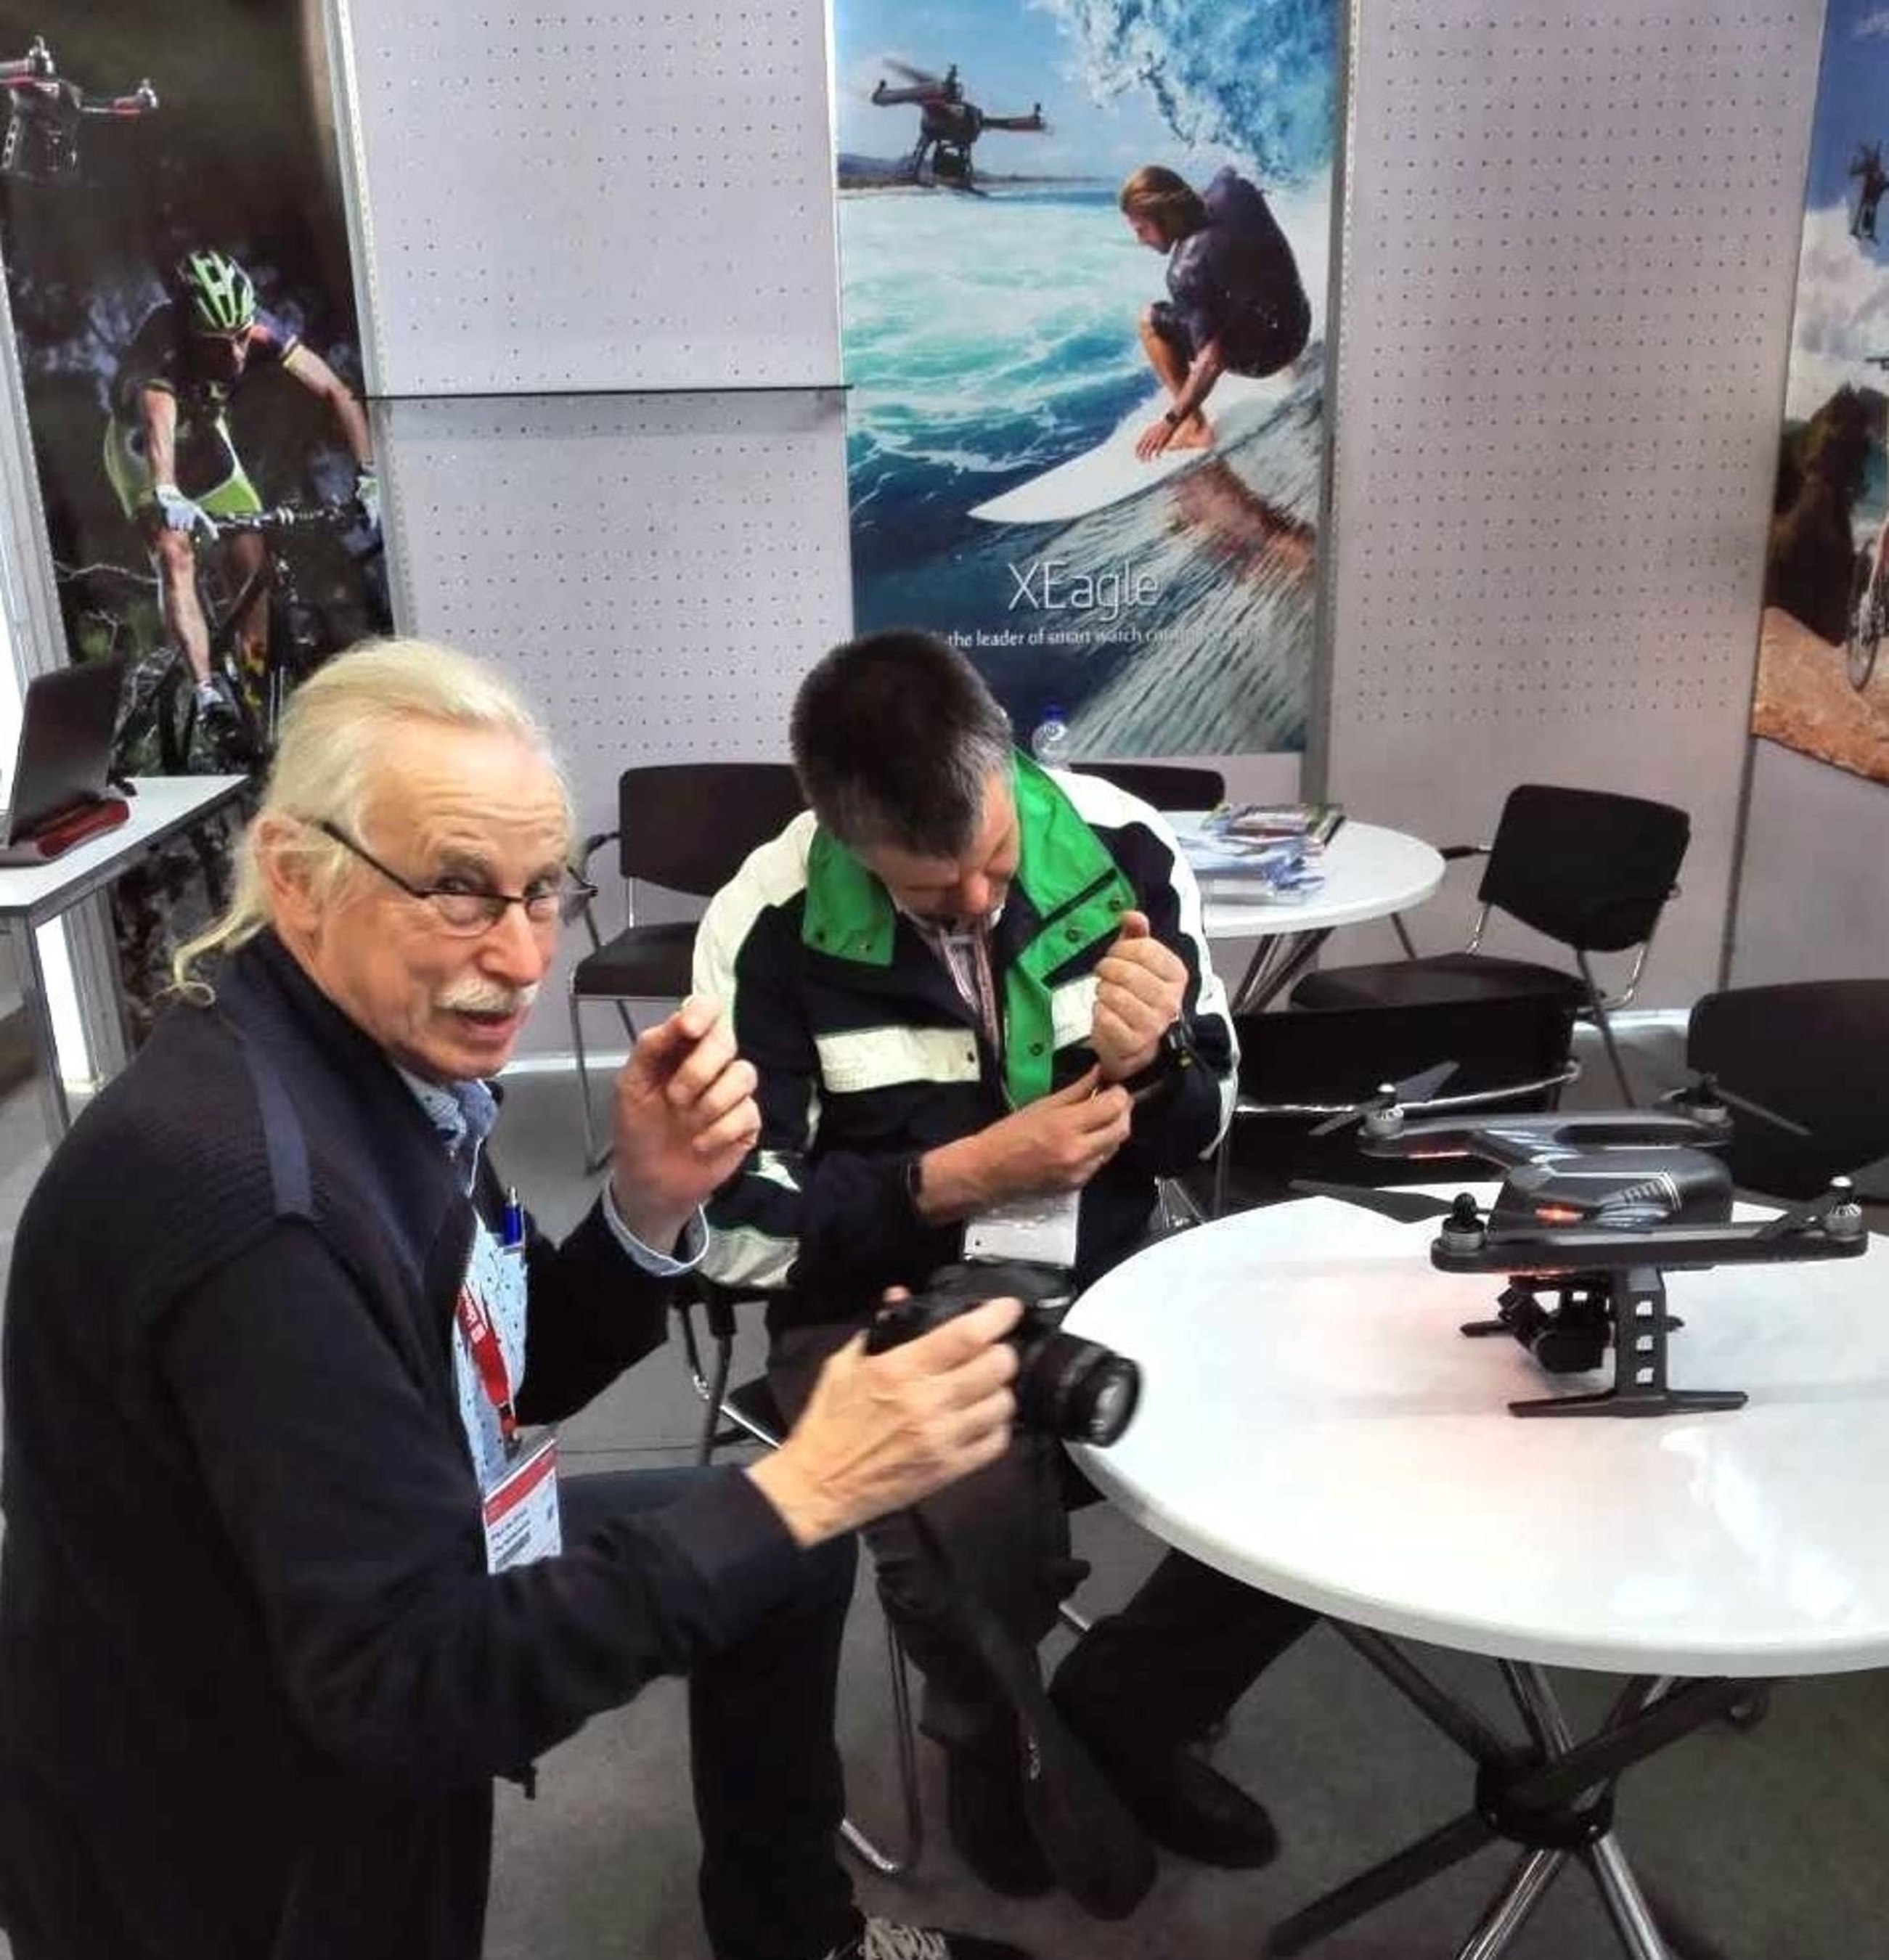 The FLYPRO XEagle received significant media coverage as a result of its appearance at the 2016 Nuremberg Toy Fair in Germany